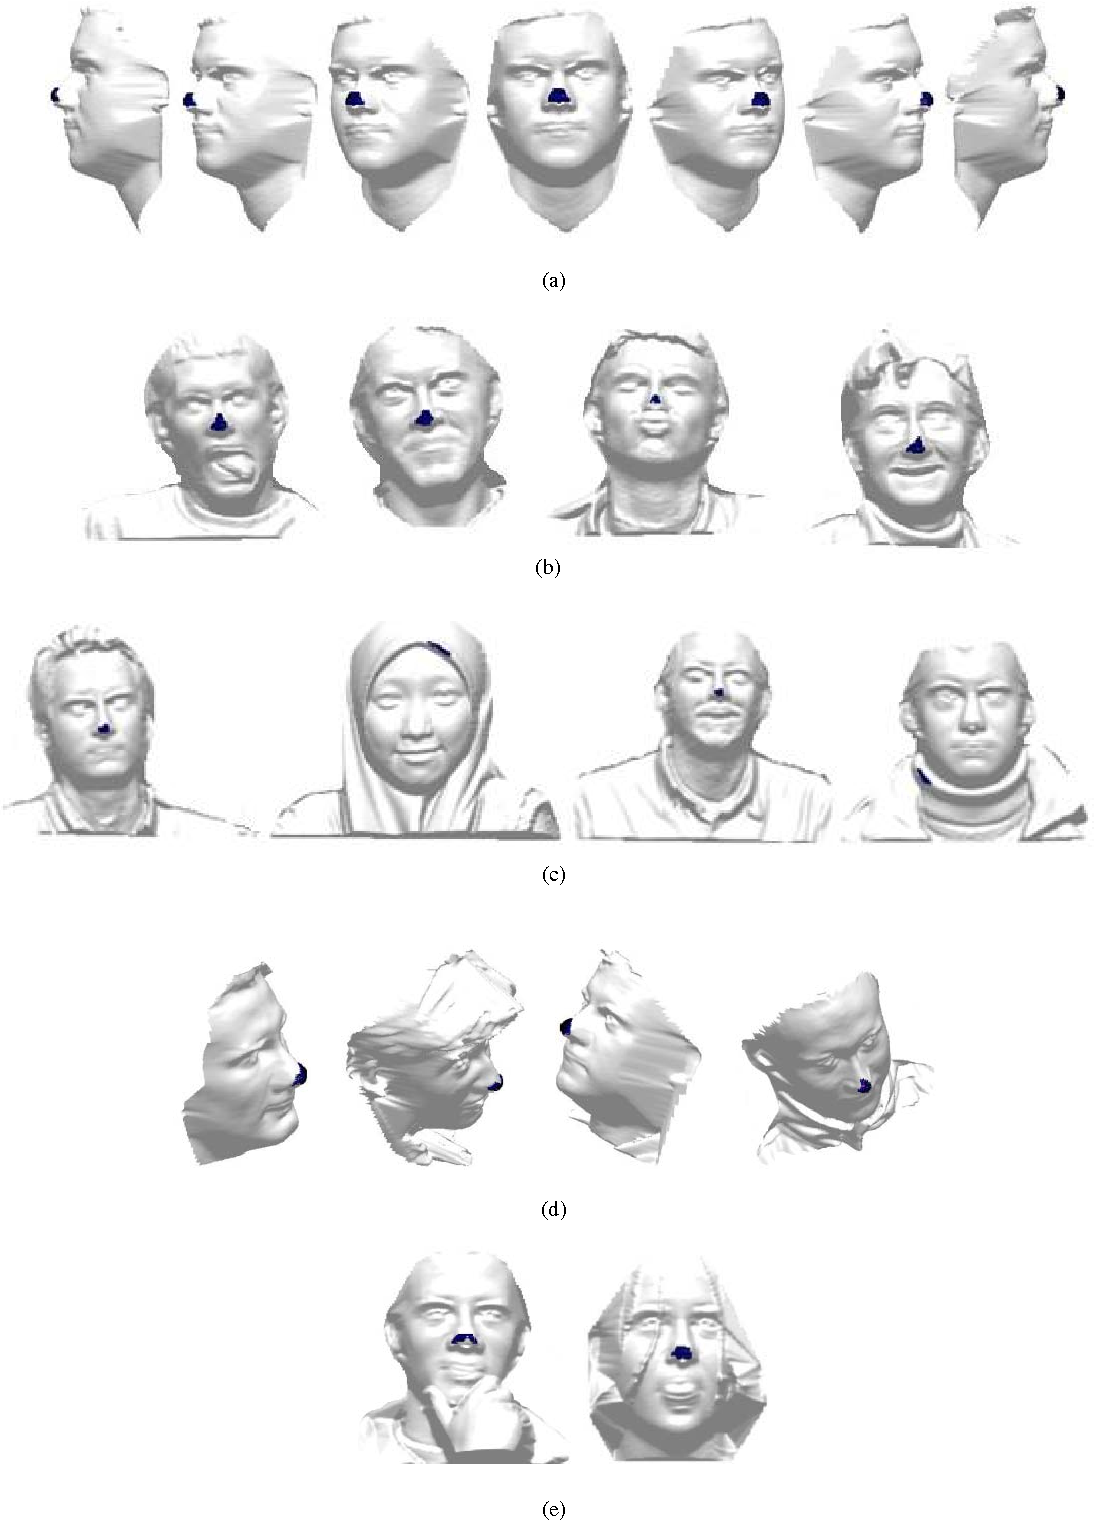 Figure 6 from Nose tip region detection in 3D facial model across